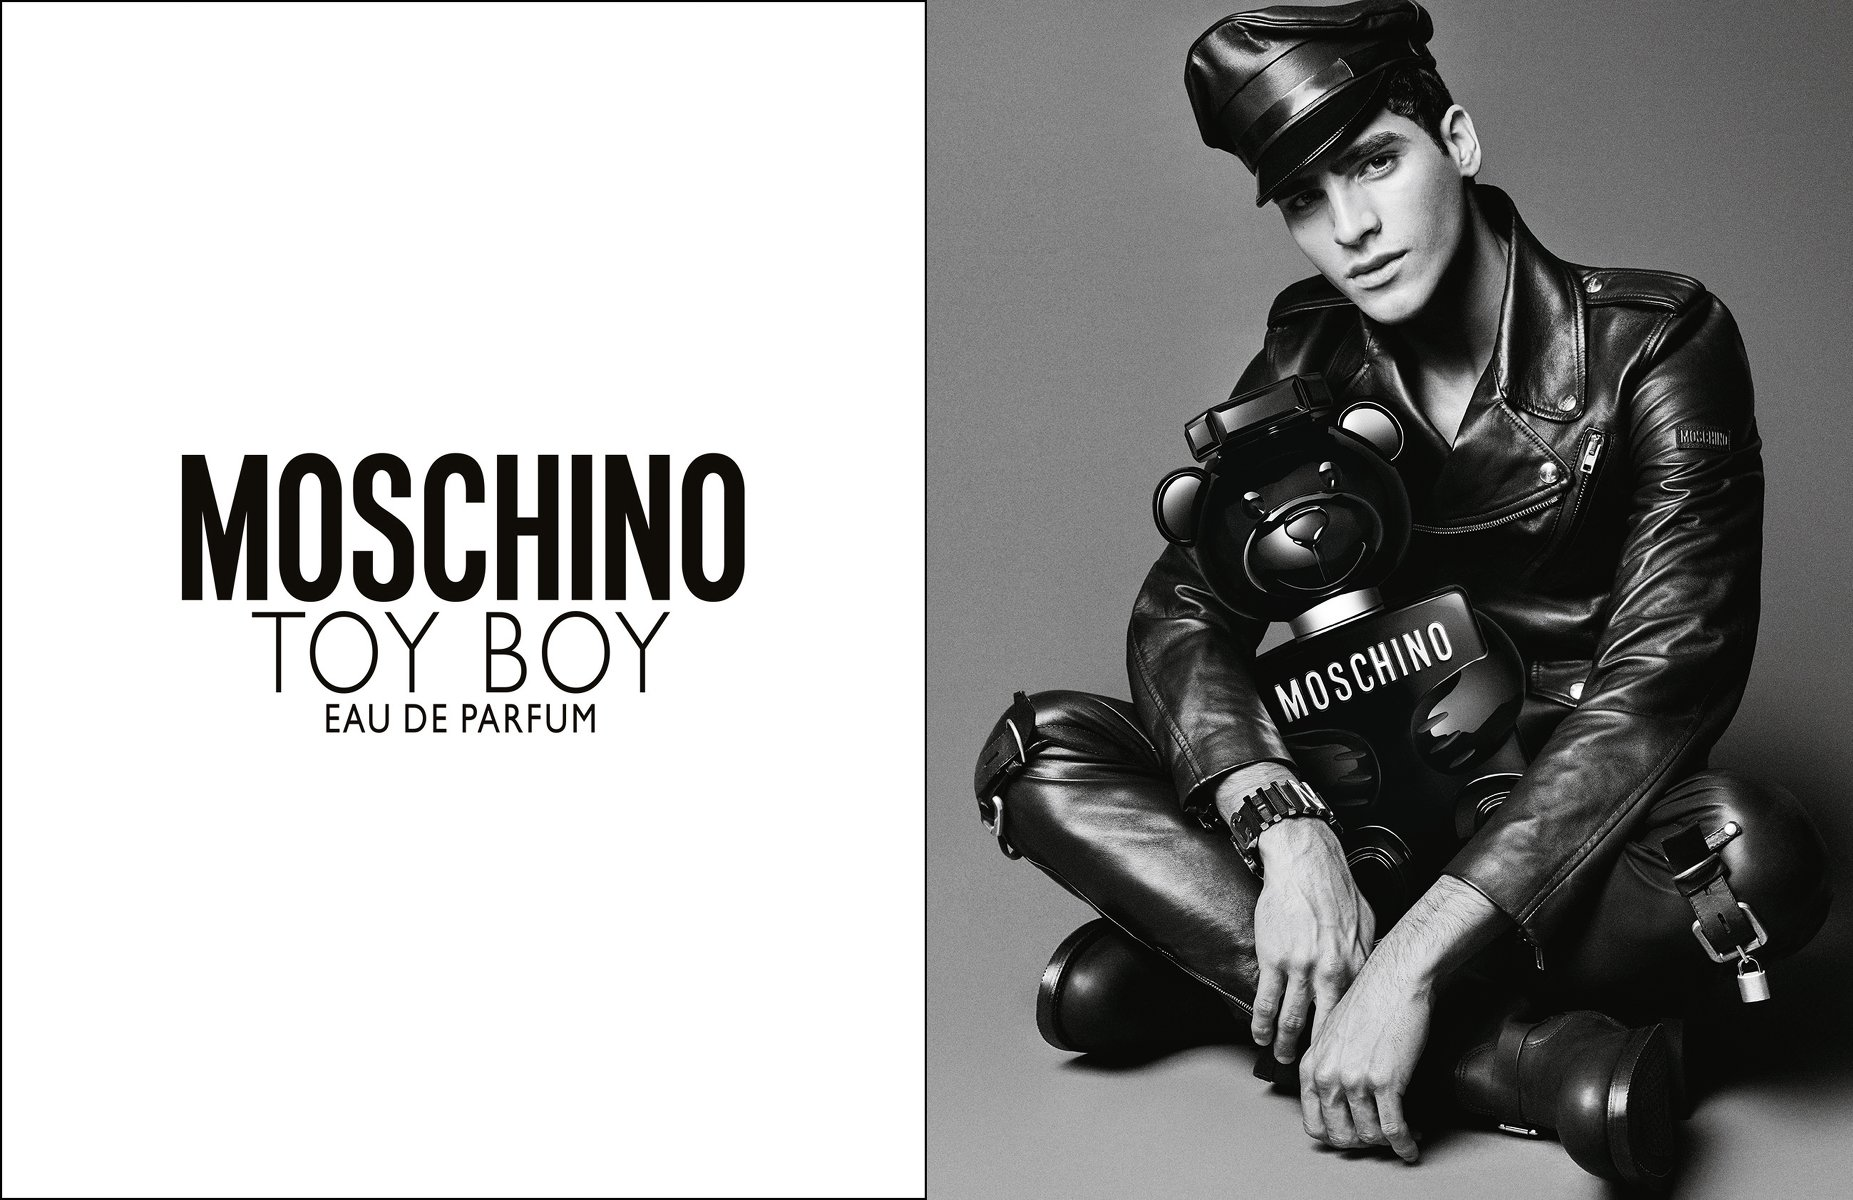 Moschino Toy Boy Campaign